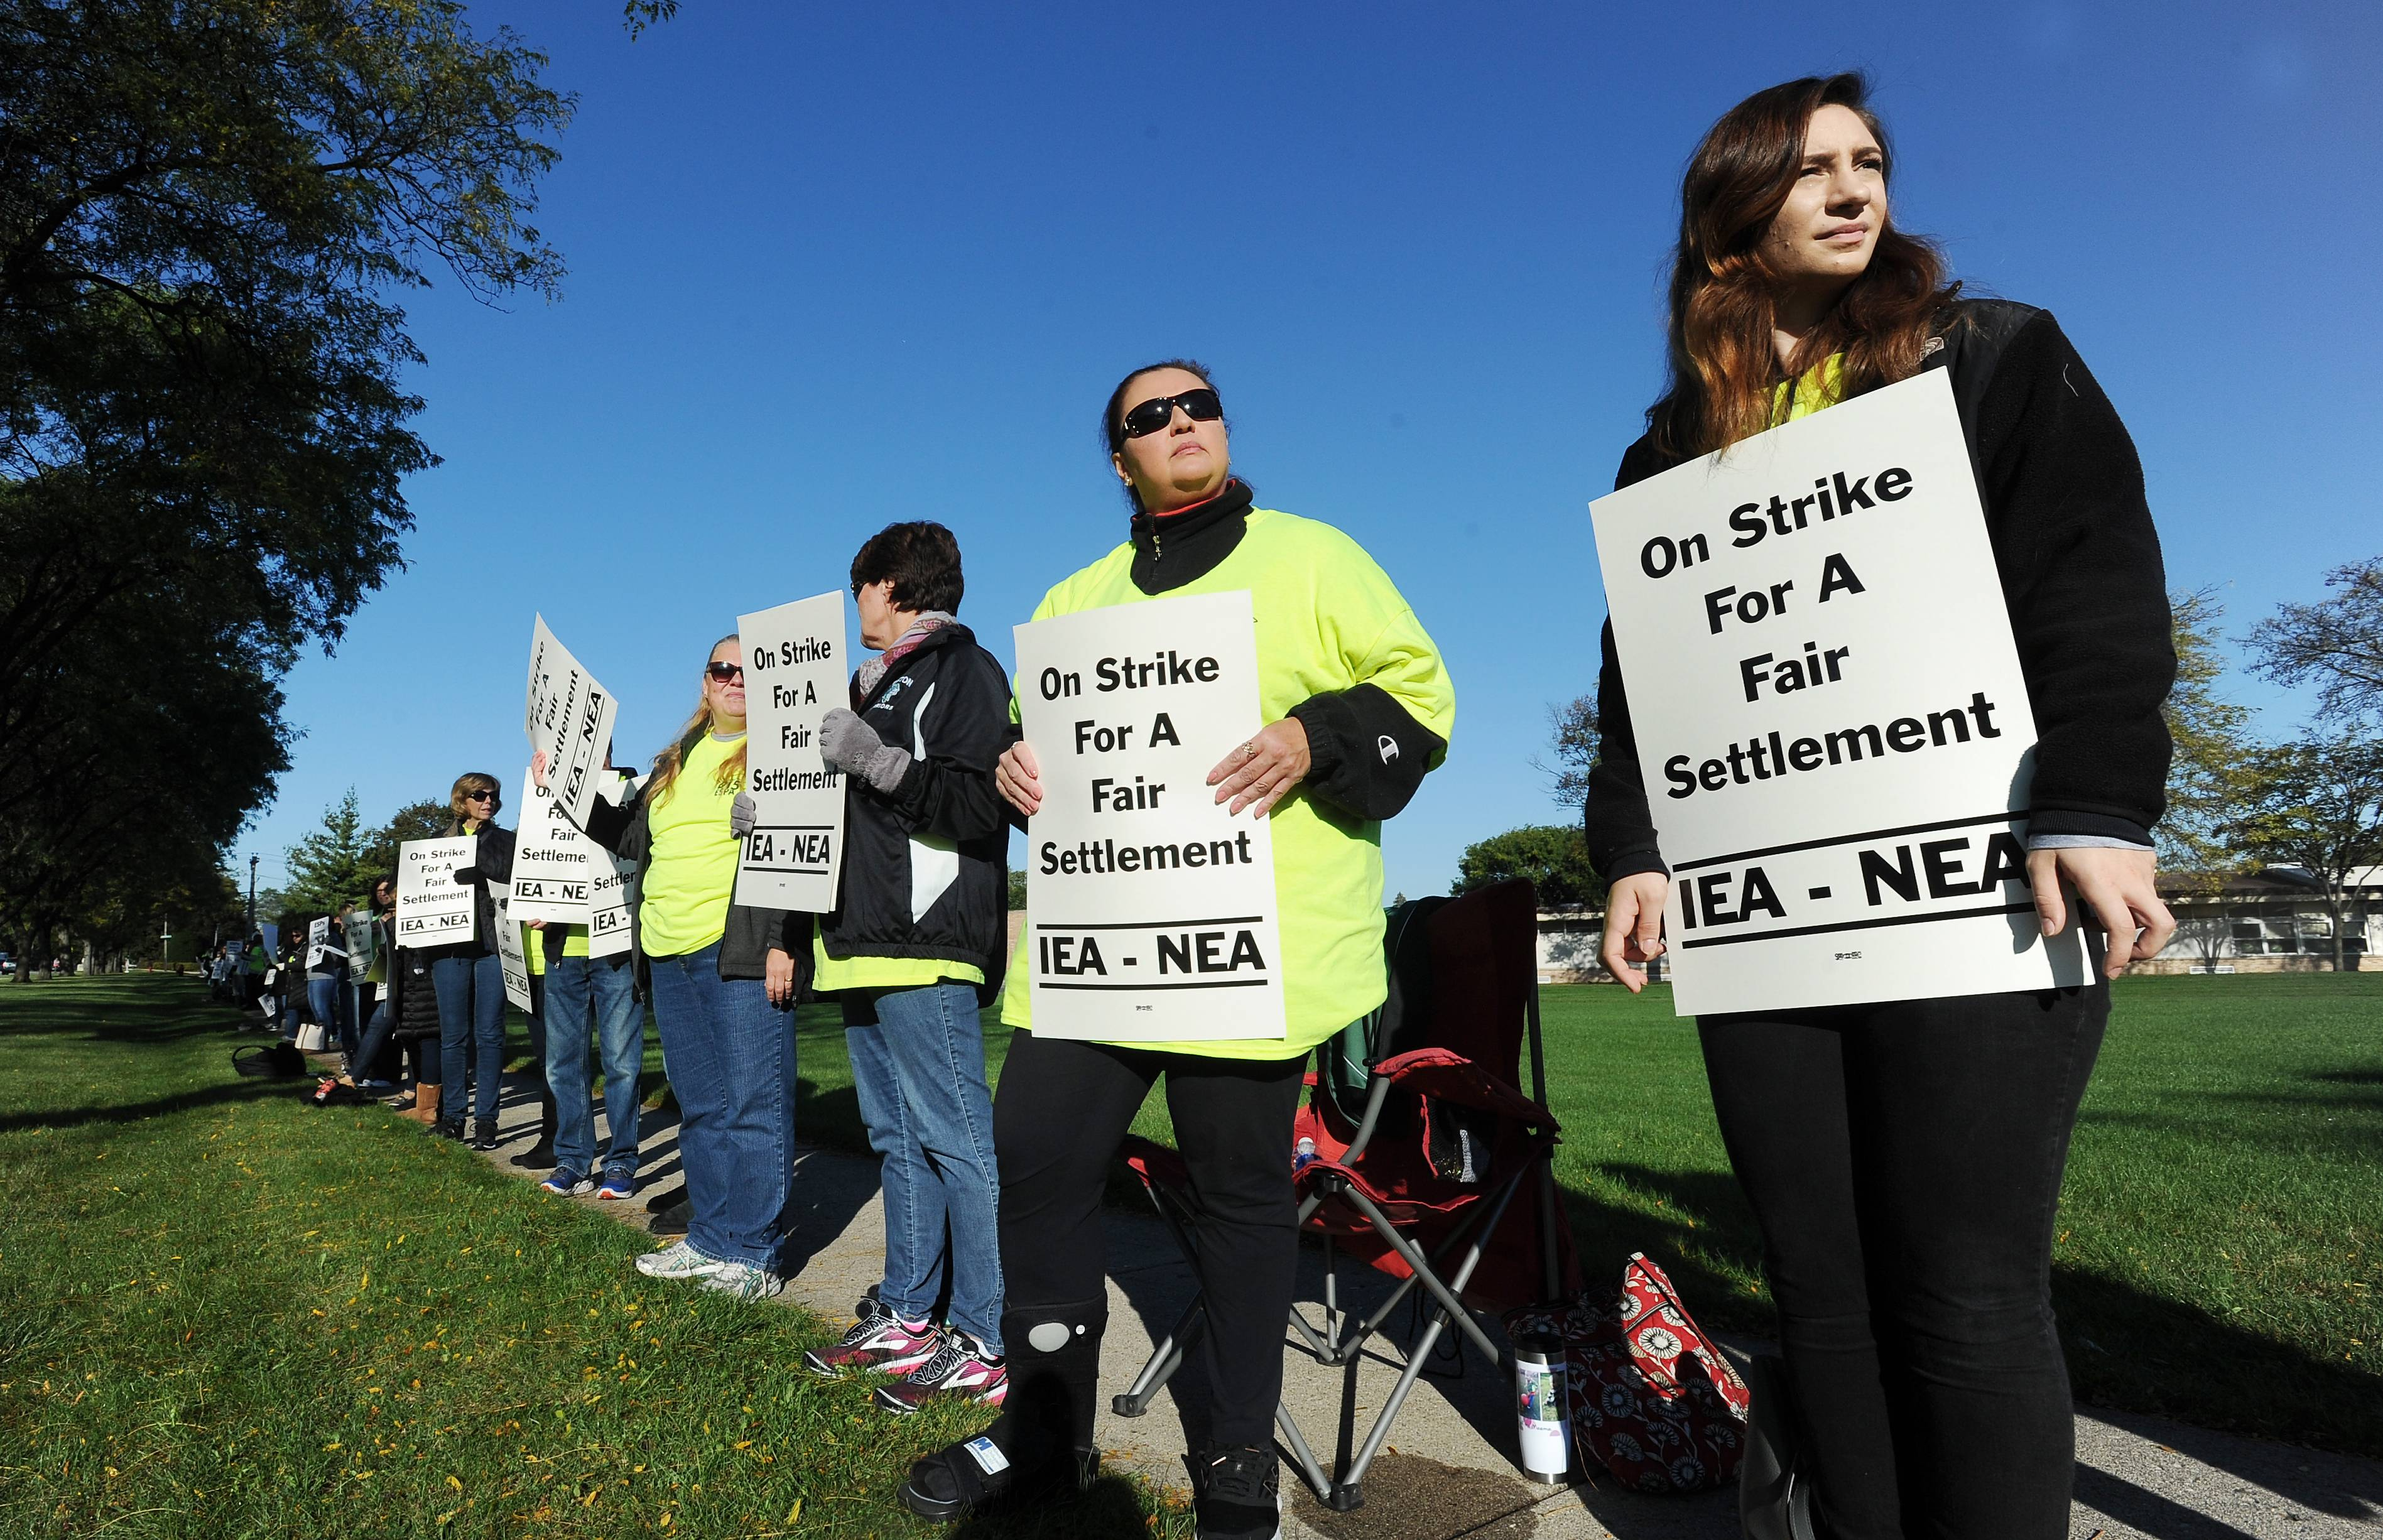 Palatine Township Elementary District 15 officials expected all striking nurses and special education classroom aides to be back at work Wednesday as a result of a judge's order prohibiting them from participating in a support employees strike. These workers walked a picket line at Winston Campus elementary and junior high schools in Palatine after the strike began Monday.